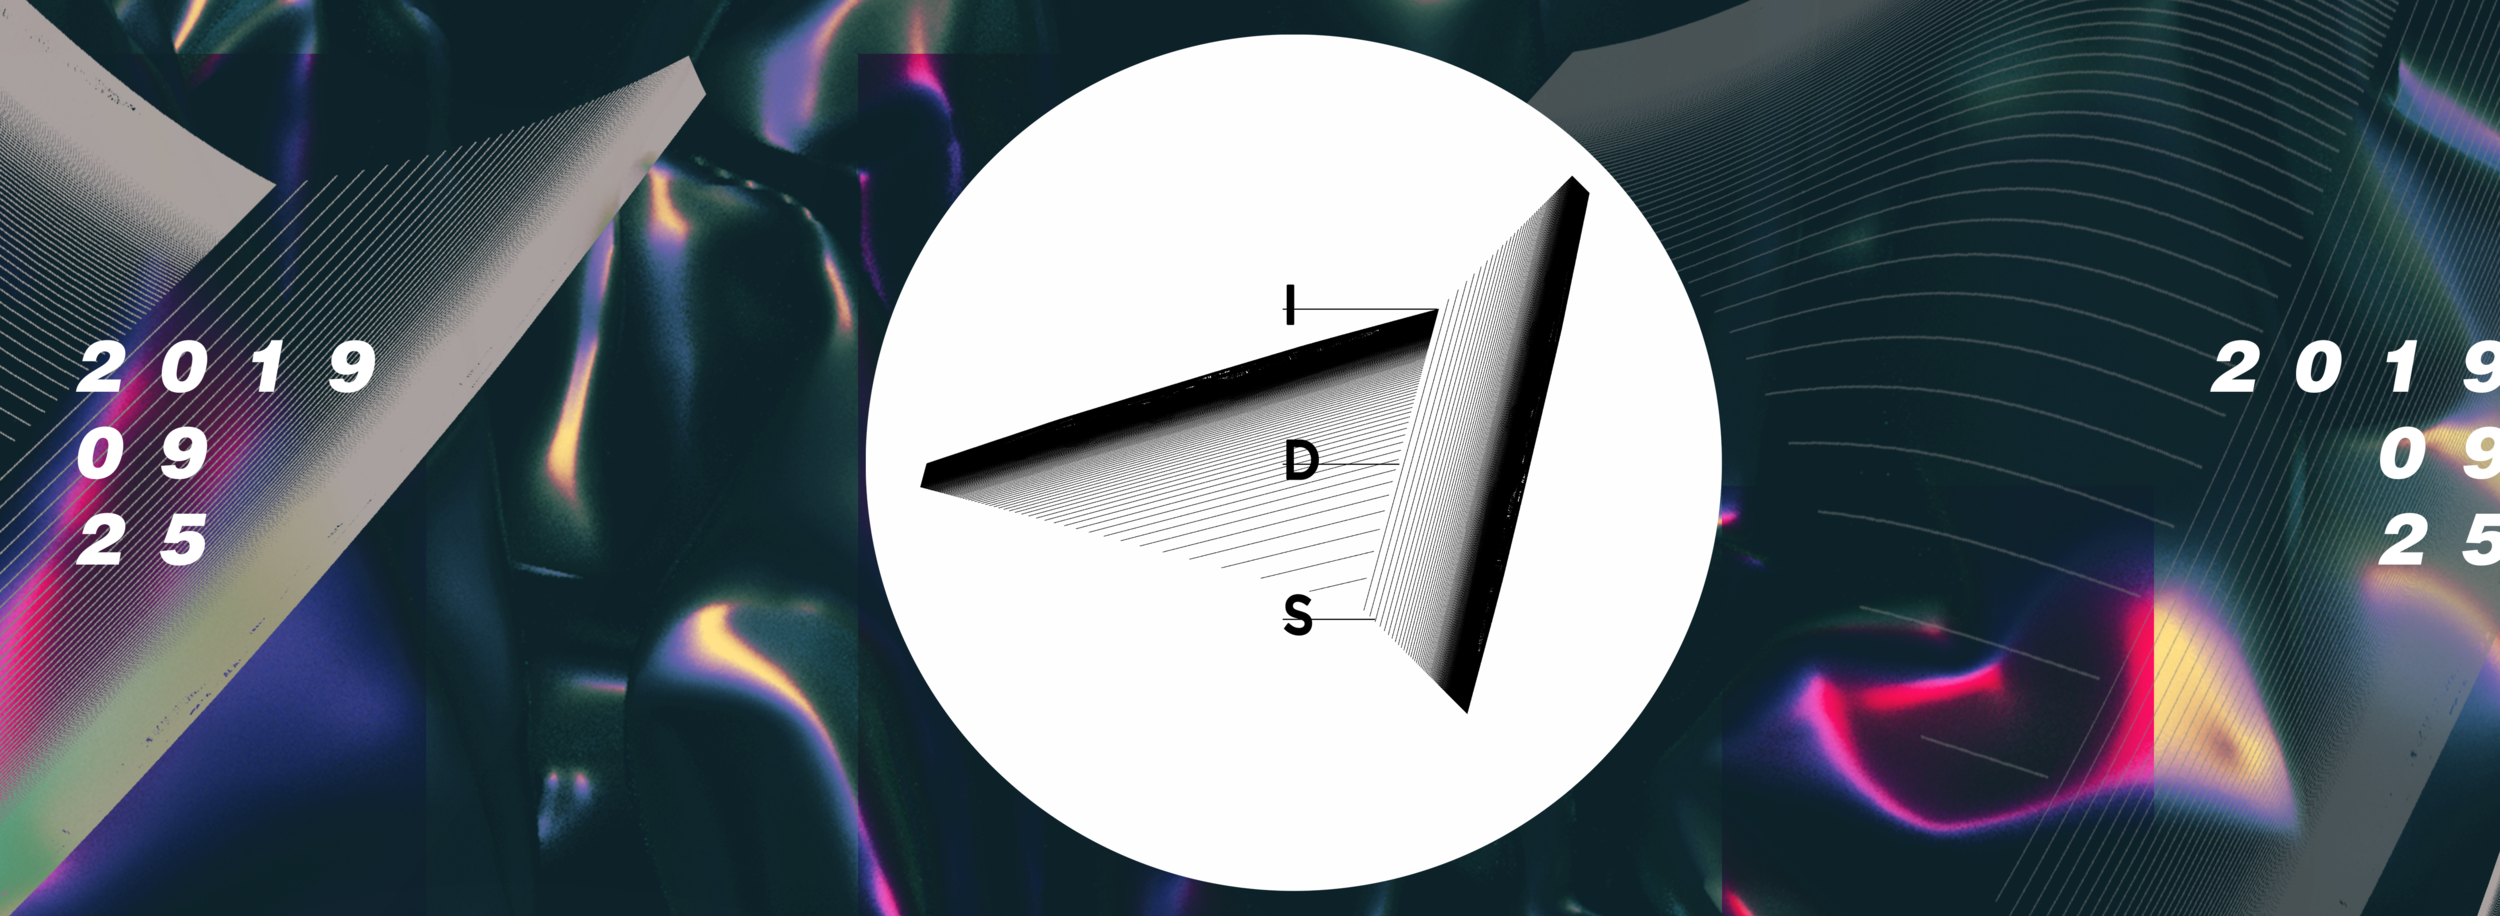 IDS poster 003 .2 BANNER HQ.png